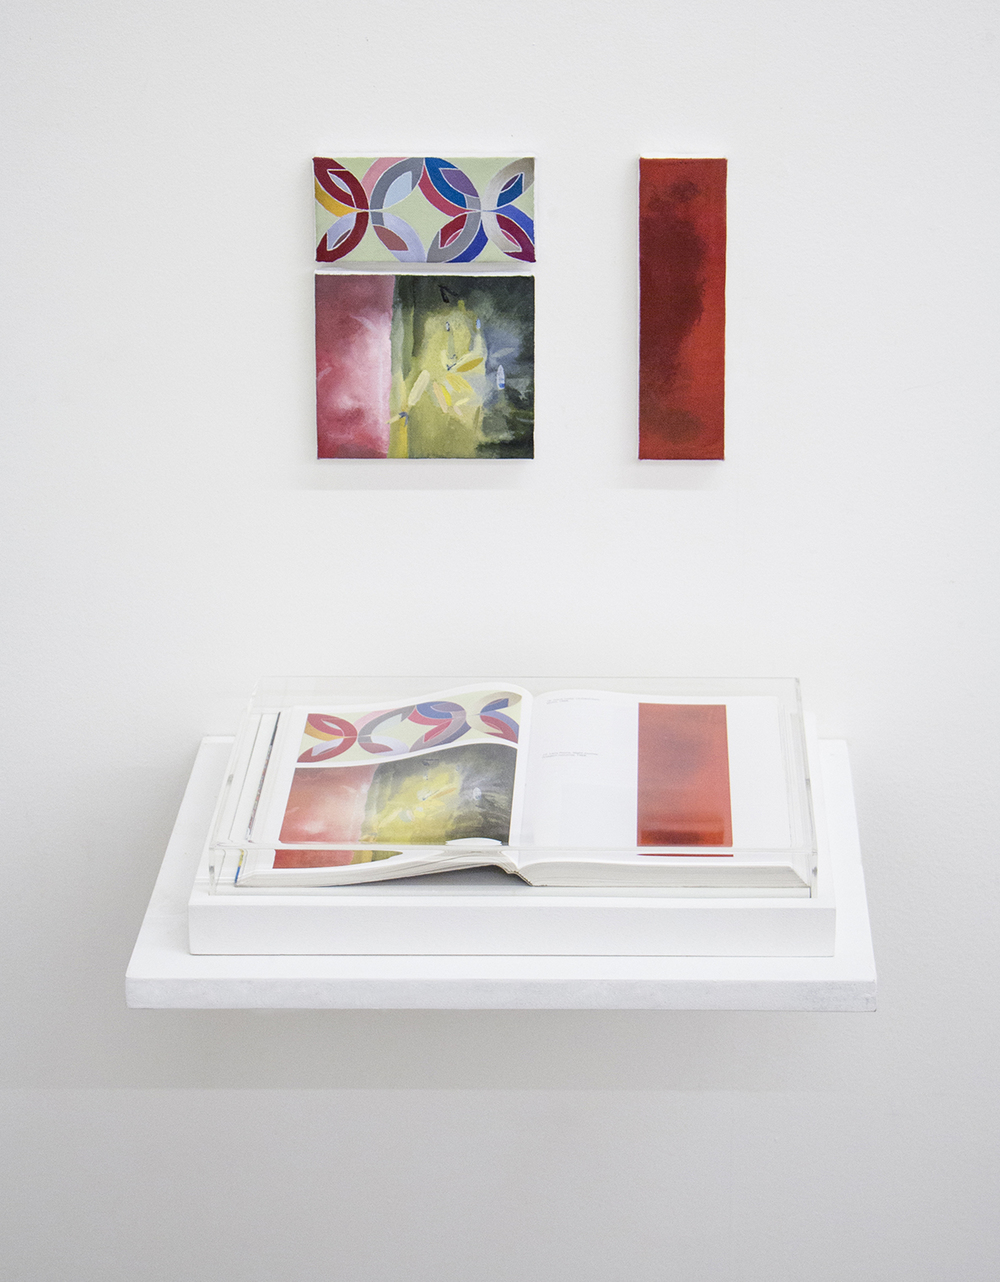 Unnumbered  Pages (That's How I Was Taught series  )  • 2014 •  Framed book, oil on canvas •  8.45 x 12.2 in (book), 5.1 x 2.55 in, 5.1 x 4.3 in, 2 x 7.3 in